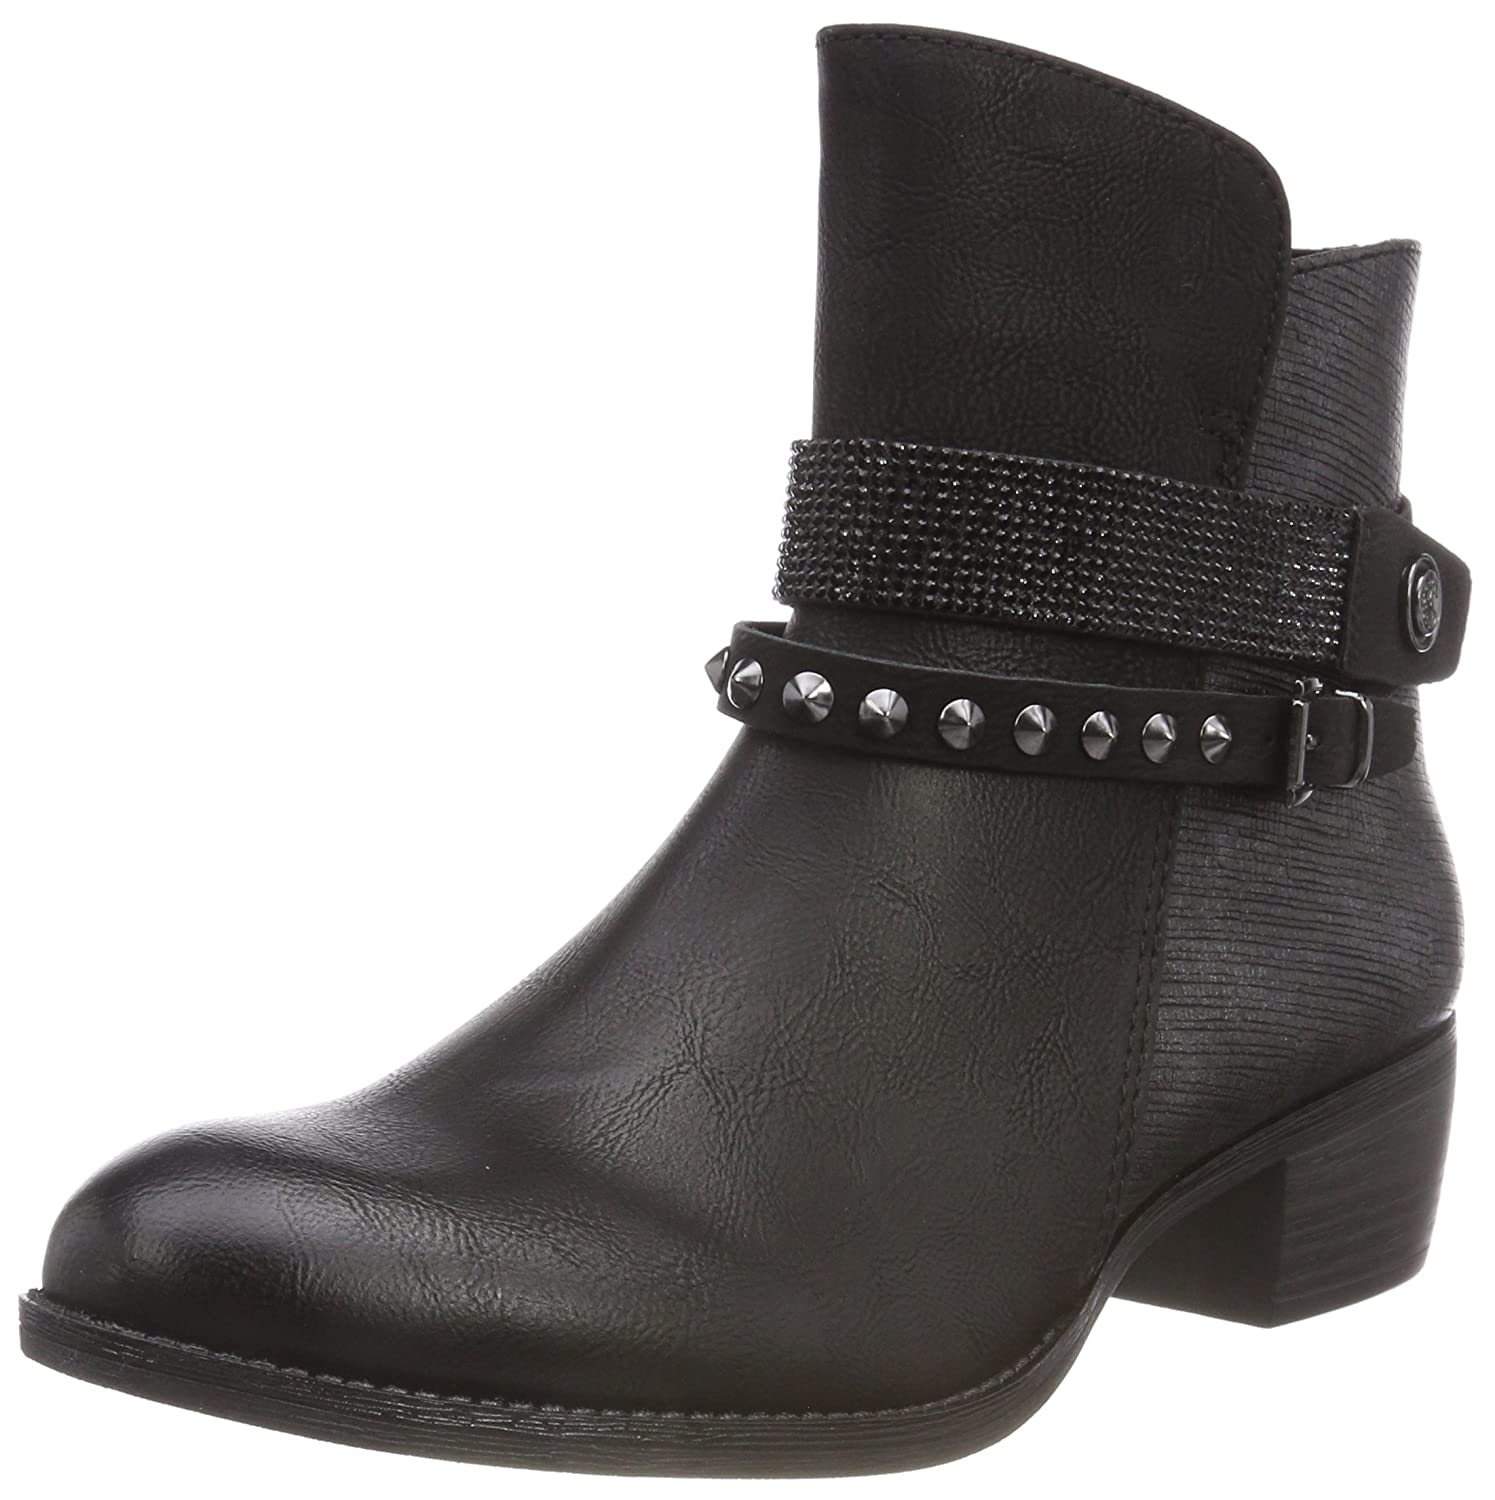 41c422be890 MARCO TOZZI Women's 2-2-25306-31 096 Ankle Boots